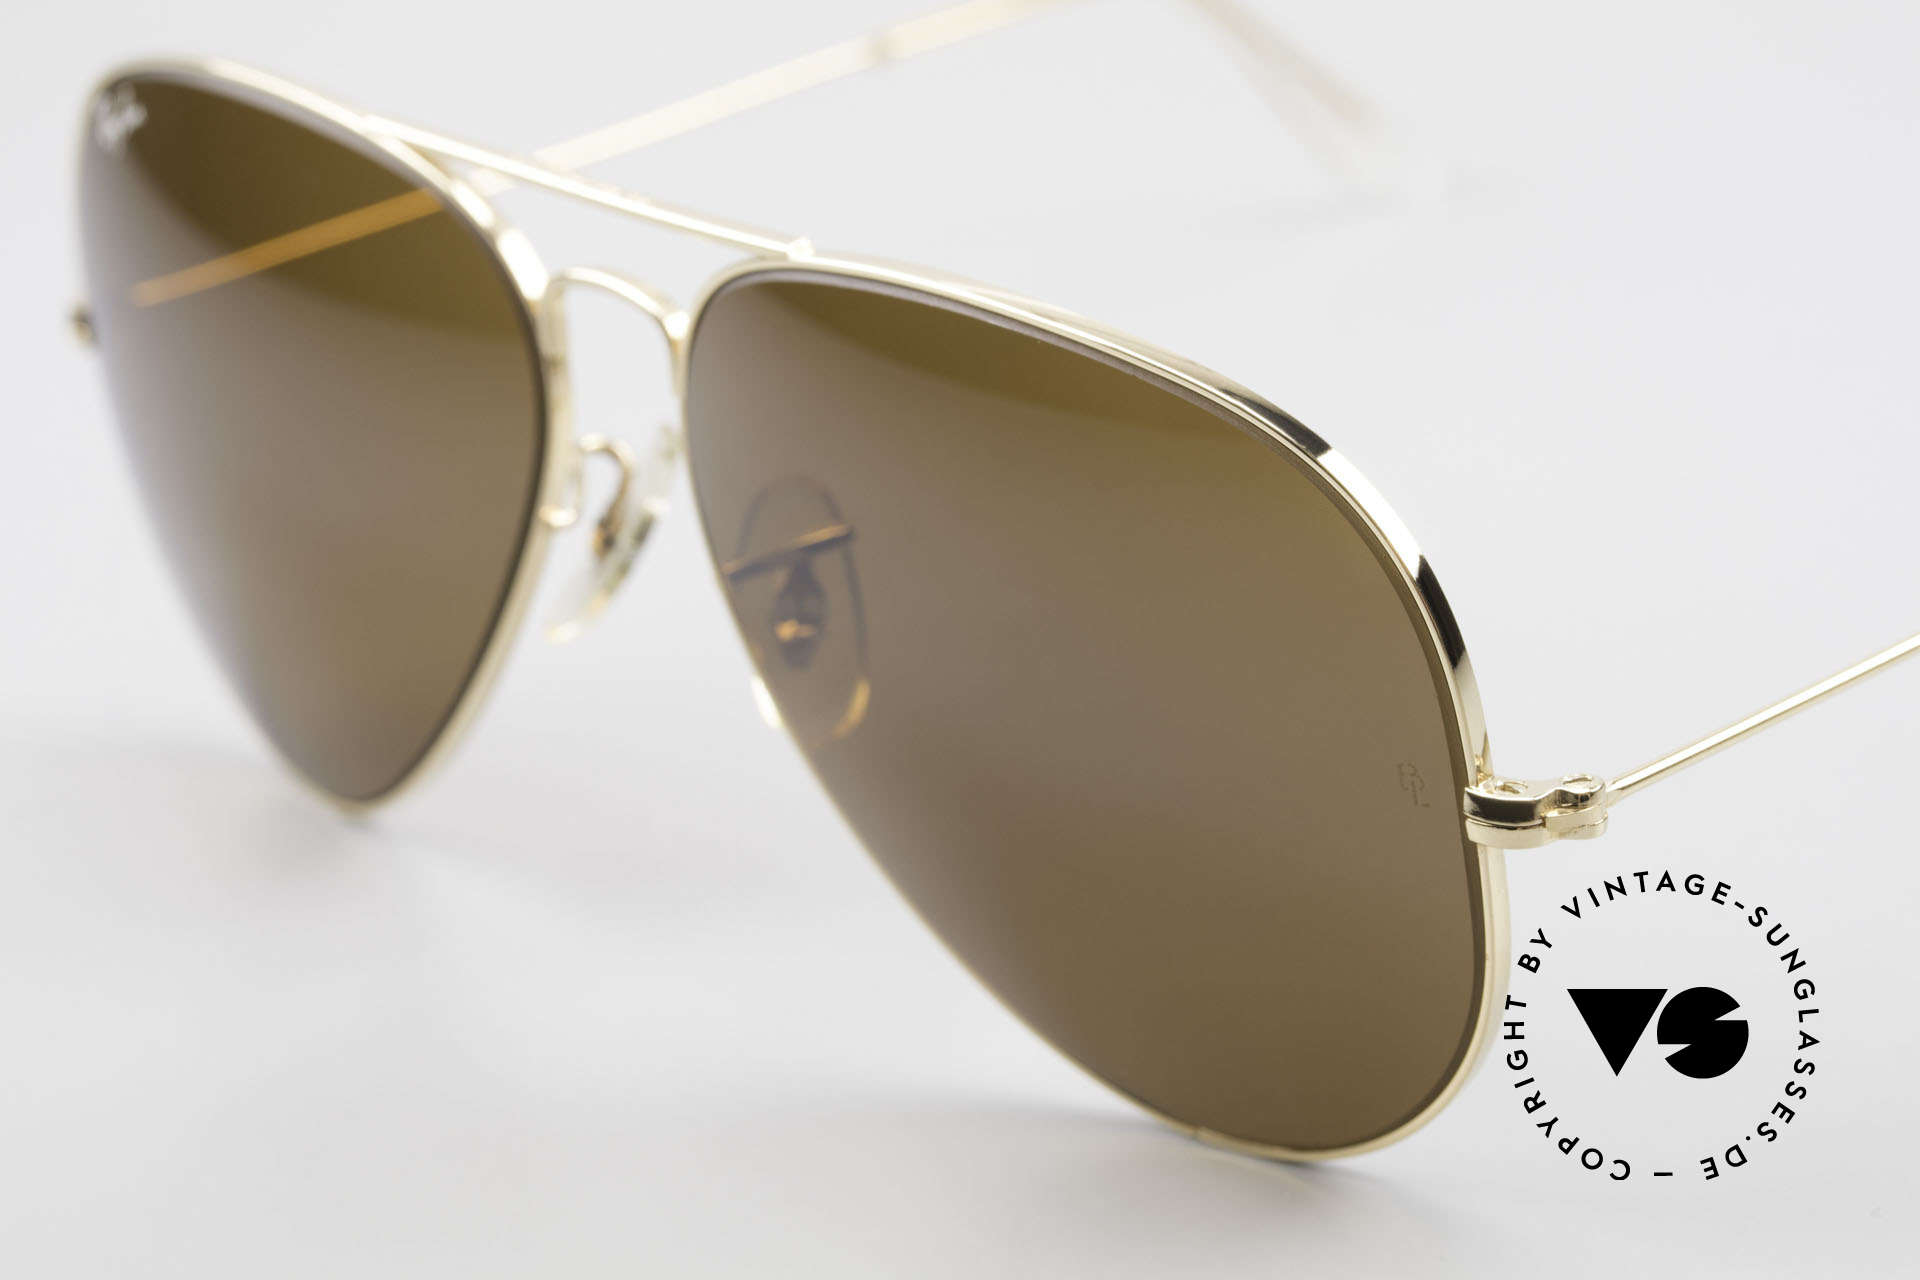 Ray Ban Large Metal II Old Ray-Ban B&L USA Shades, gold frame with mineral lenses in B15 brown solid, Made for Men